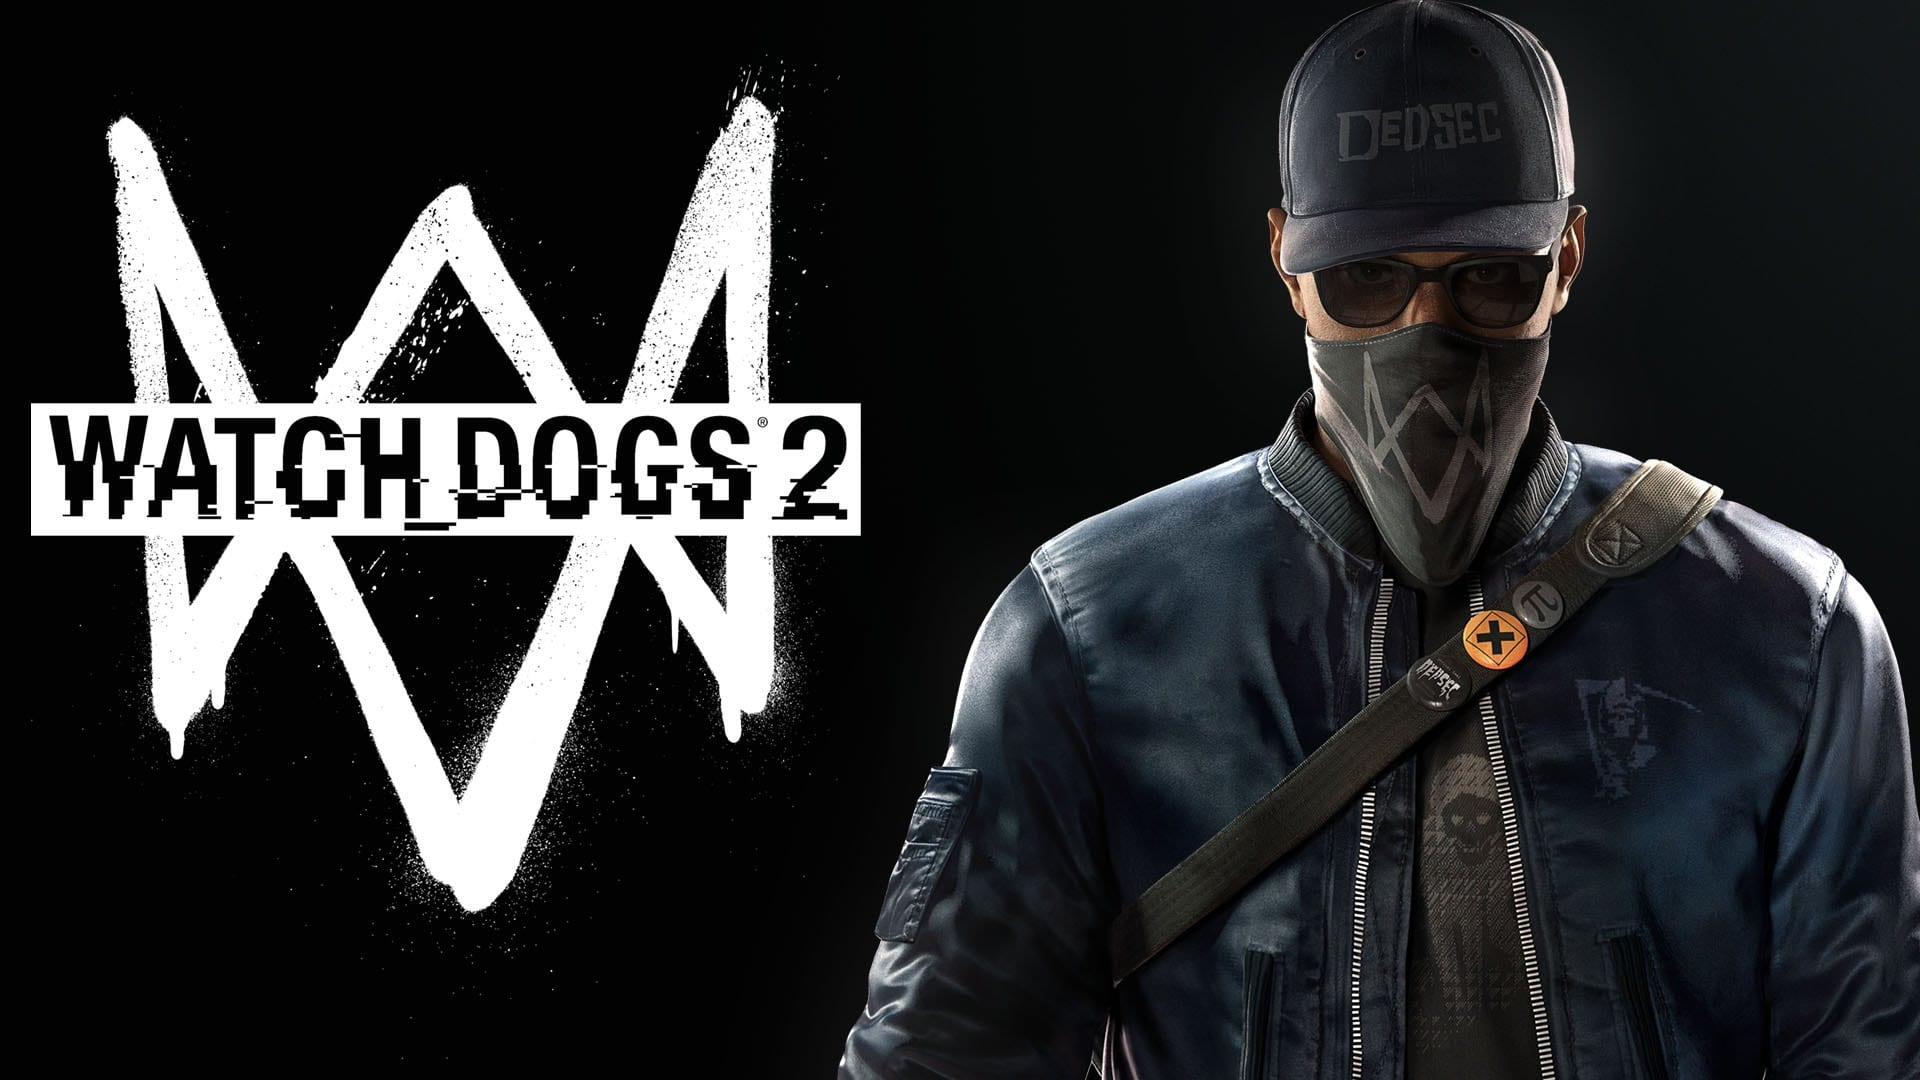 Pictures Of Watch Dogs 2: Watch Dogs 2 - Recensione